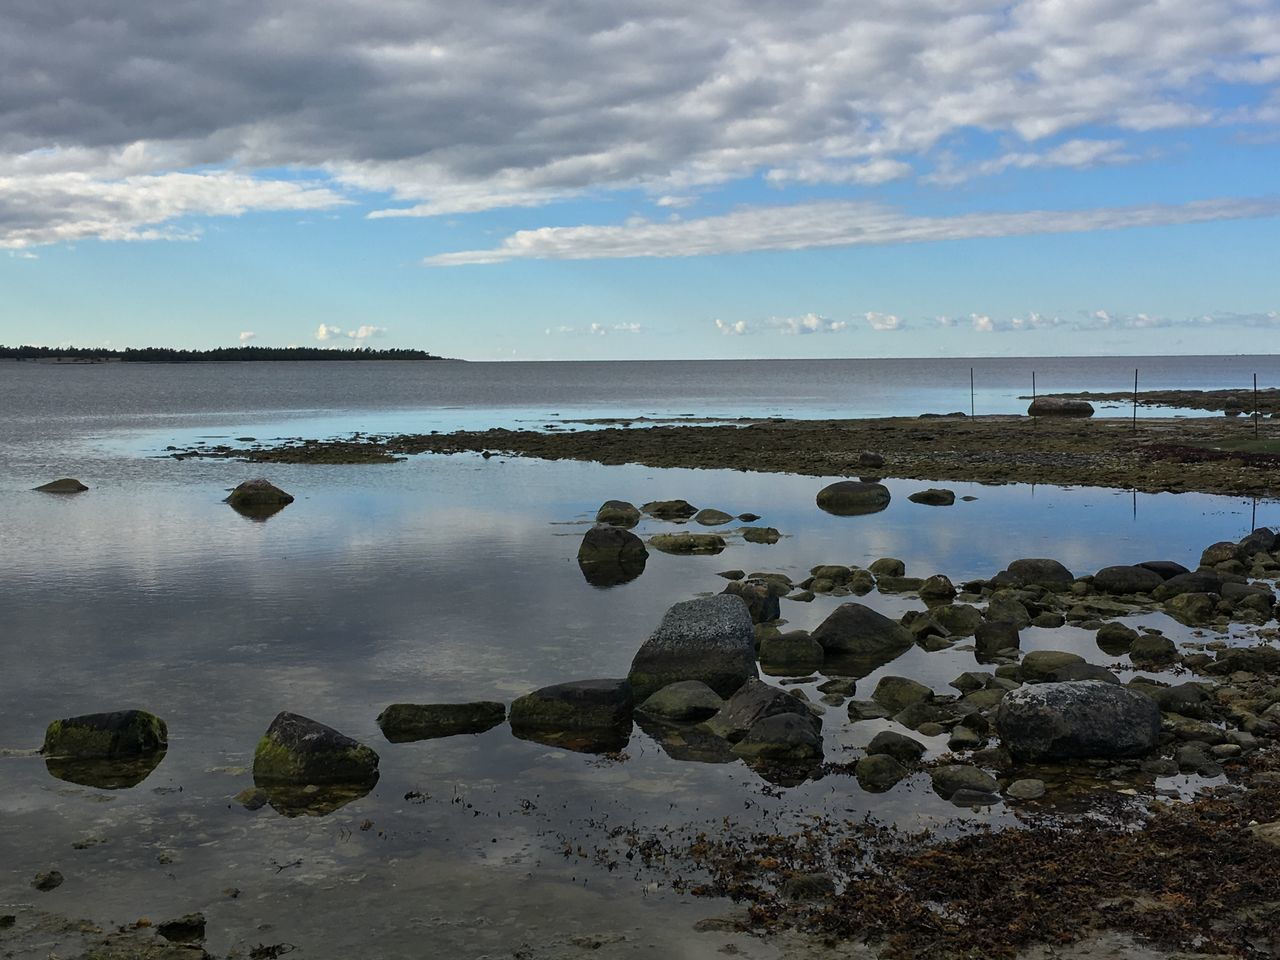 Water Sea Tranquil Scene Scenics Tranquility Beach Rock - Object Horizon Over Water Beauty In Nature Sky Purist No Edit No Filter My Photos My Point Of View Baltic Sea Östersjön Sweden My Photography EyeEmBestPics Idyllic Nature Tourism Cloud - Sky Reflection Calm Ocean